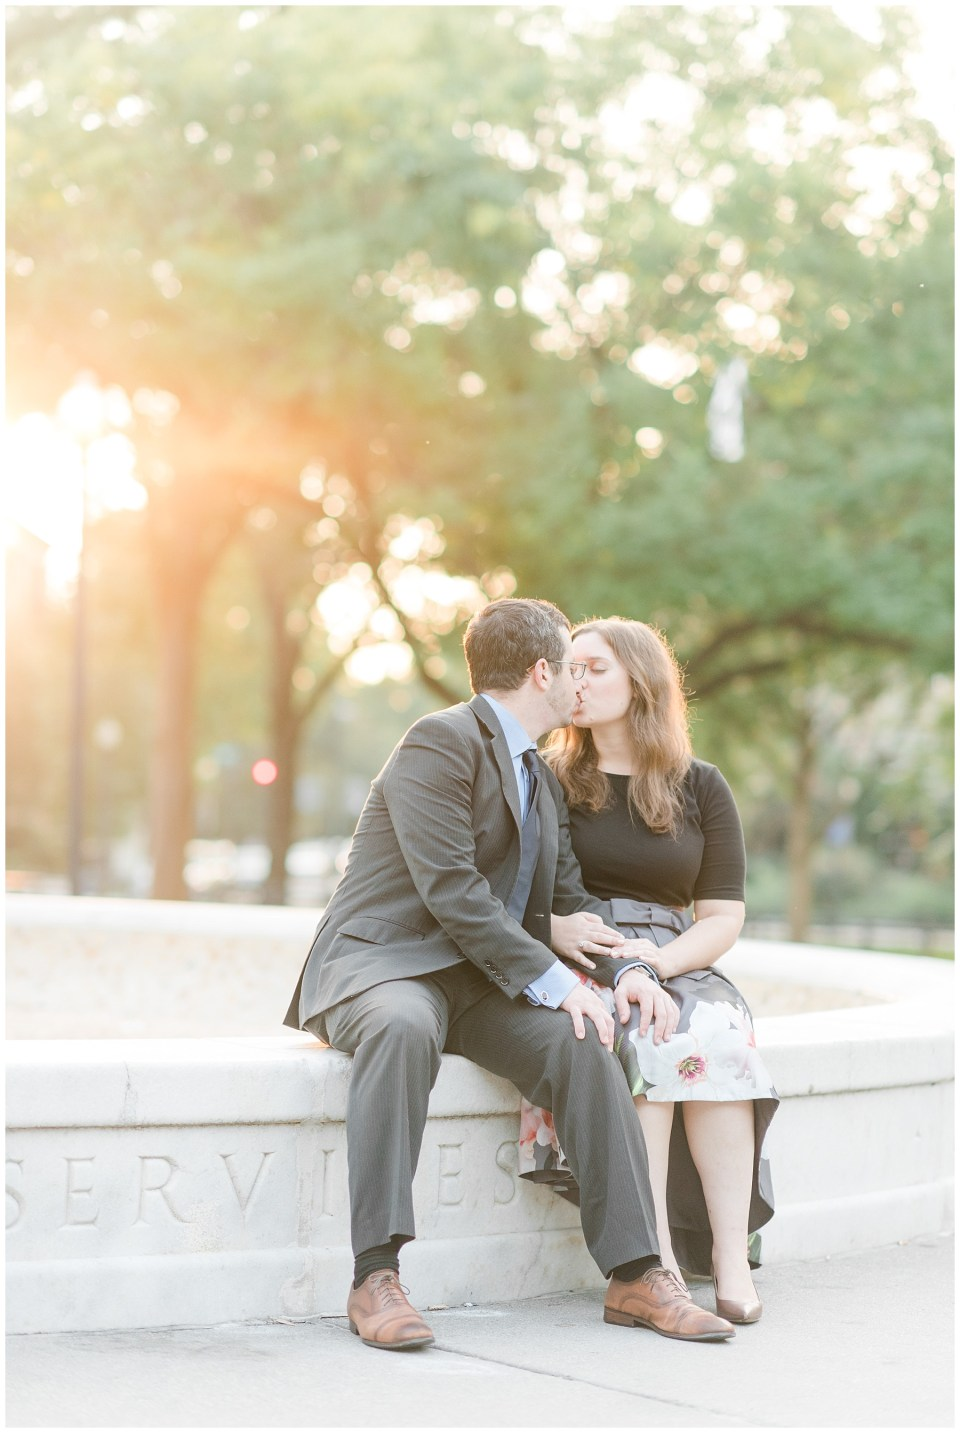 duport-circle-washington-dc-engagement-photographer-photo-20_photos.jpg